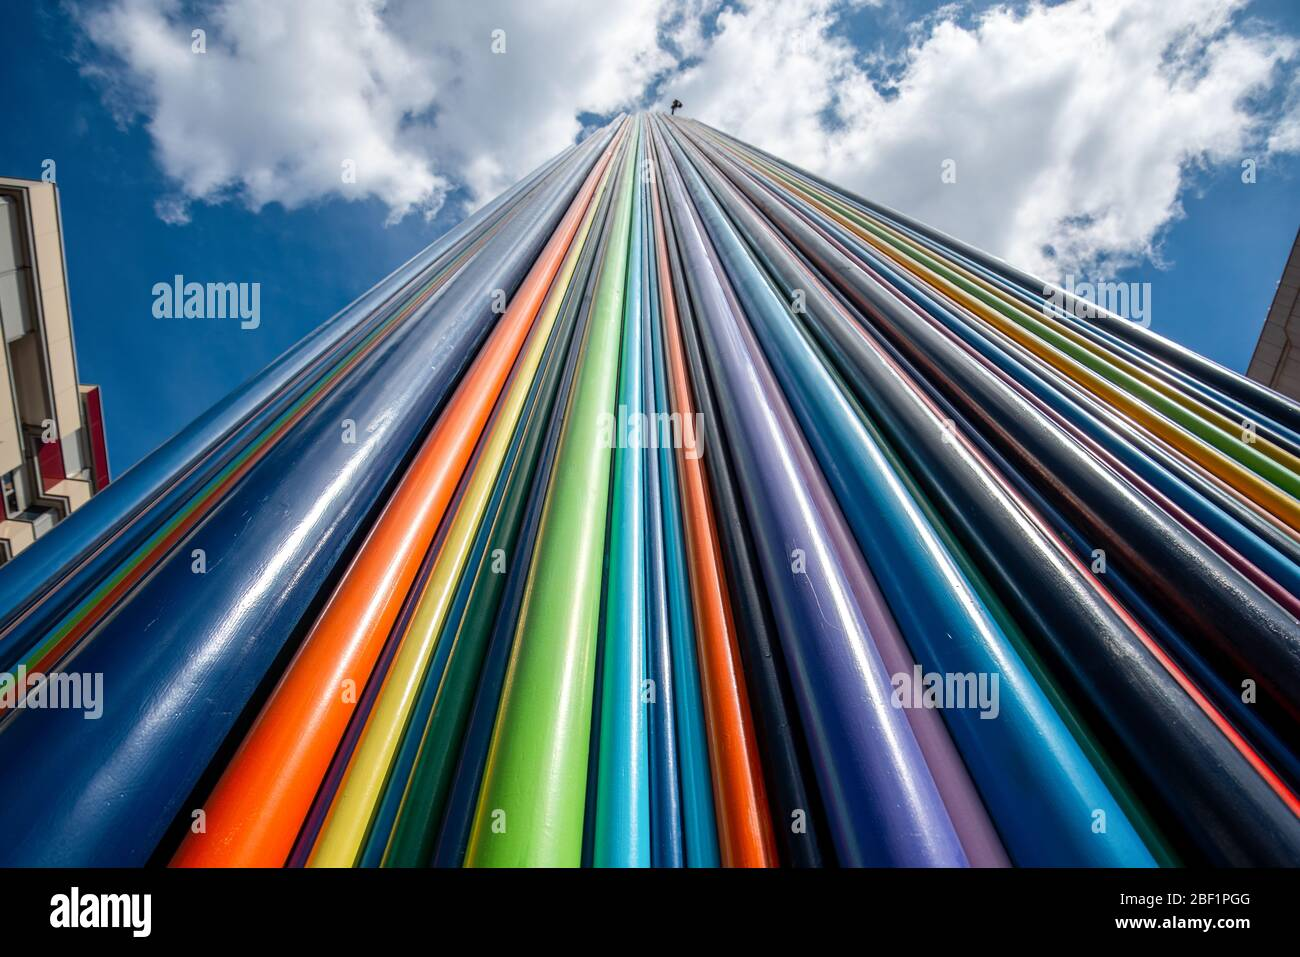 Artistic Installation Of Rainbow Colored Tubes In La Defense District In Paris France Stock Photo Alamy